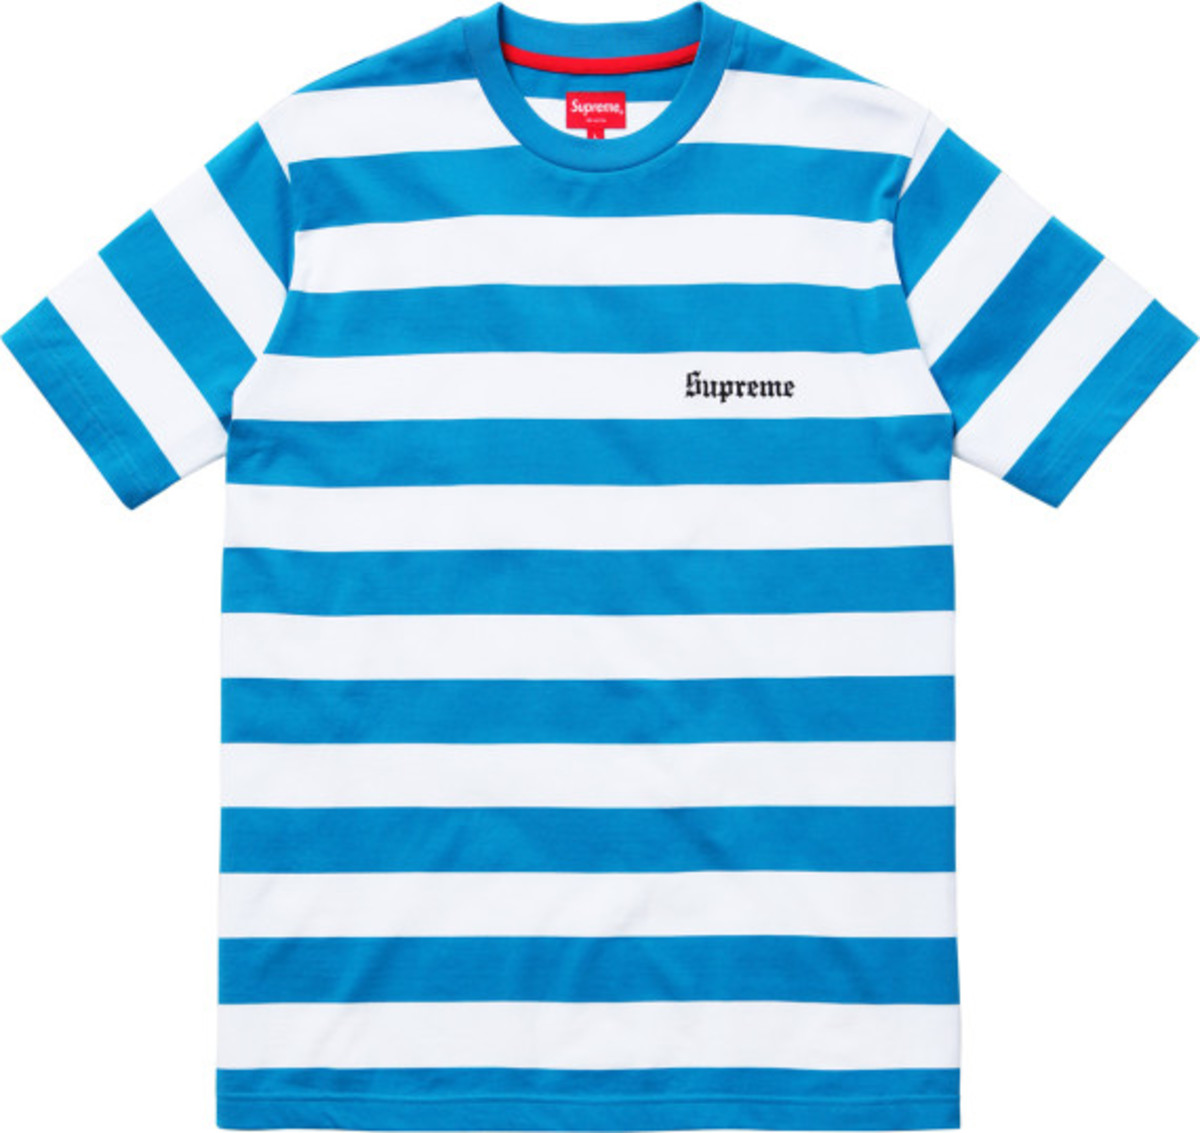 supreme-spring-summer-2015-apparel-collection-55